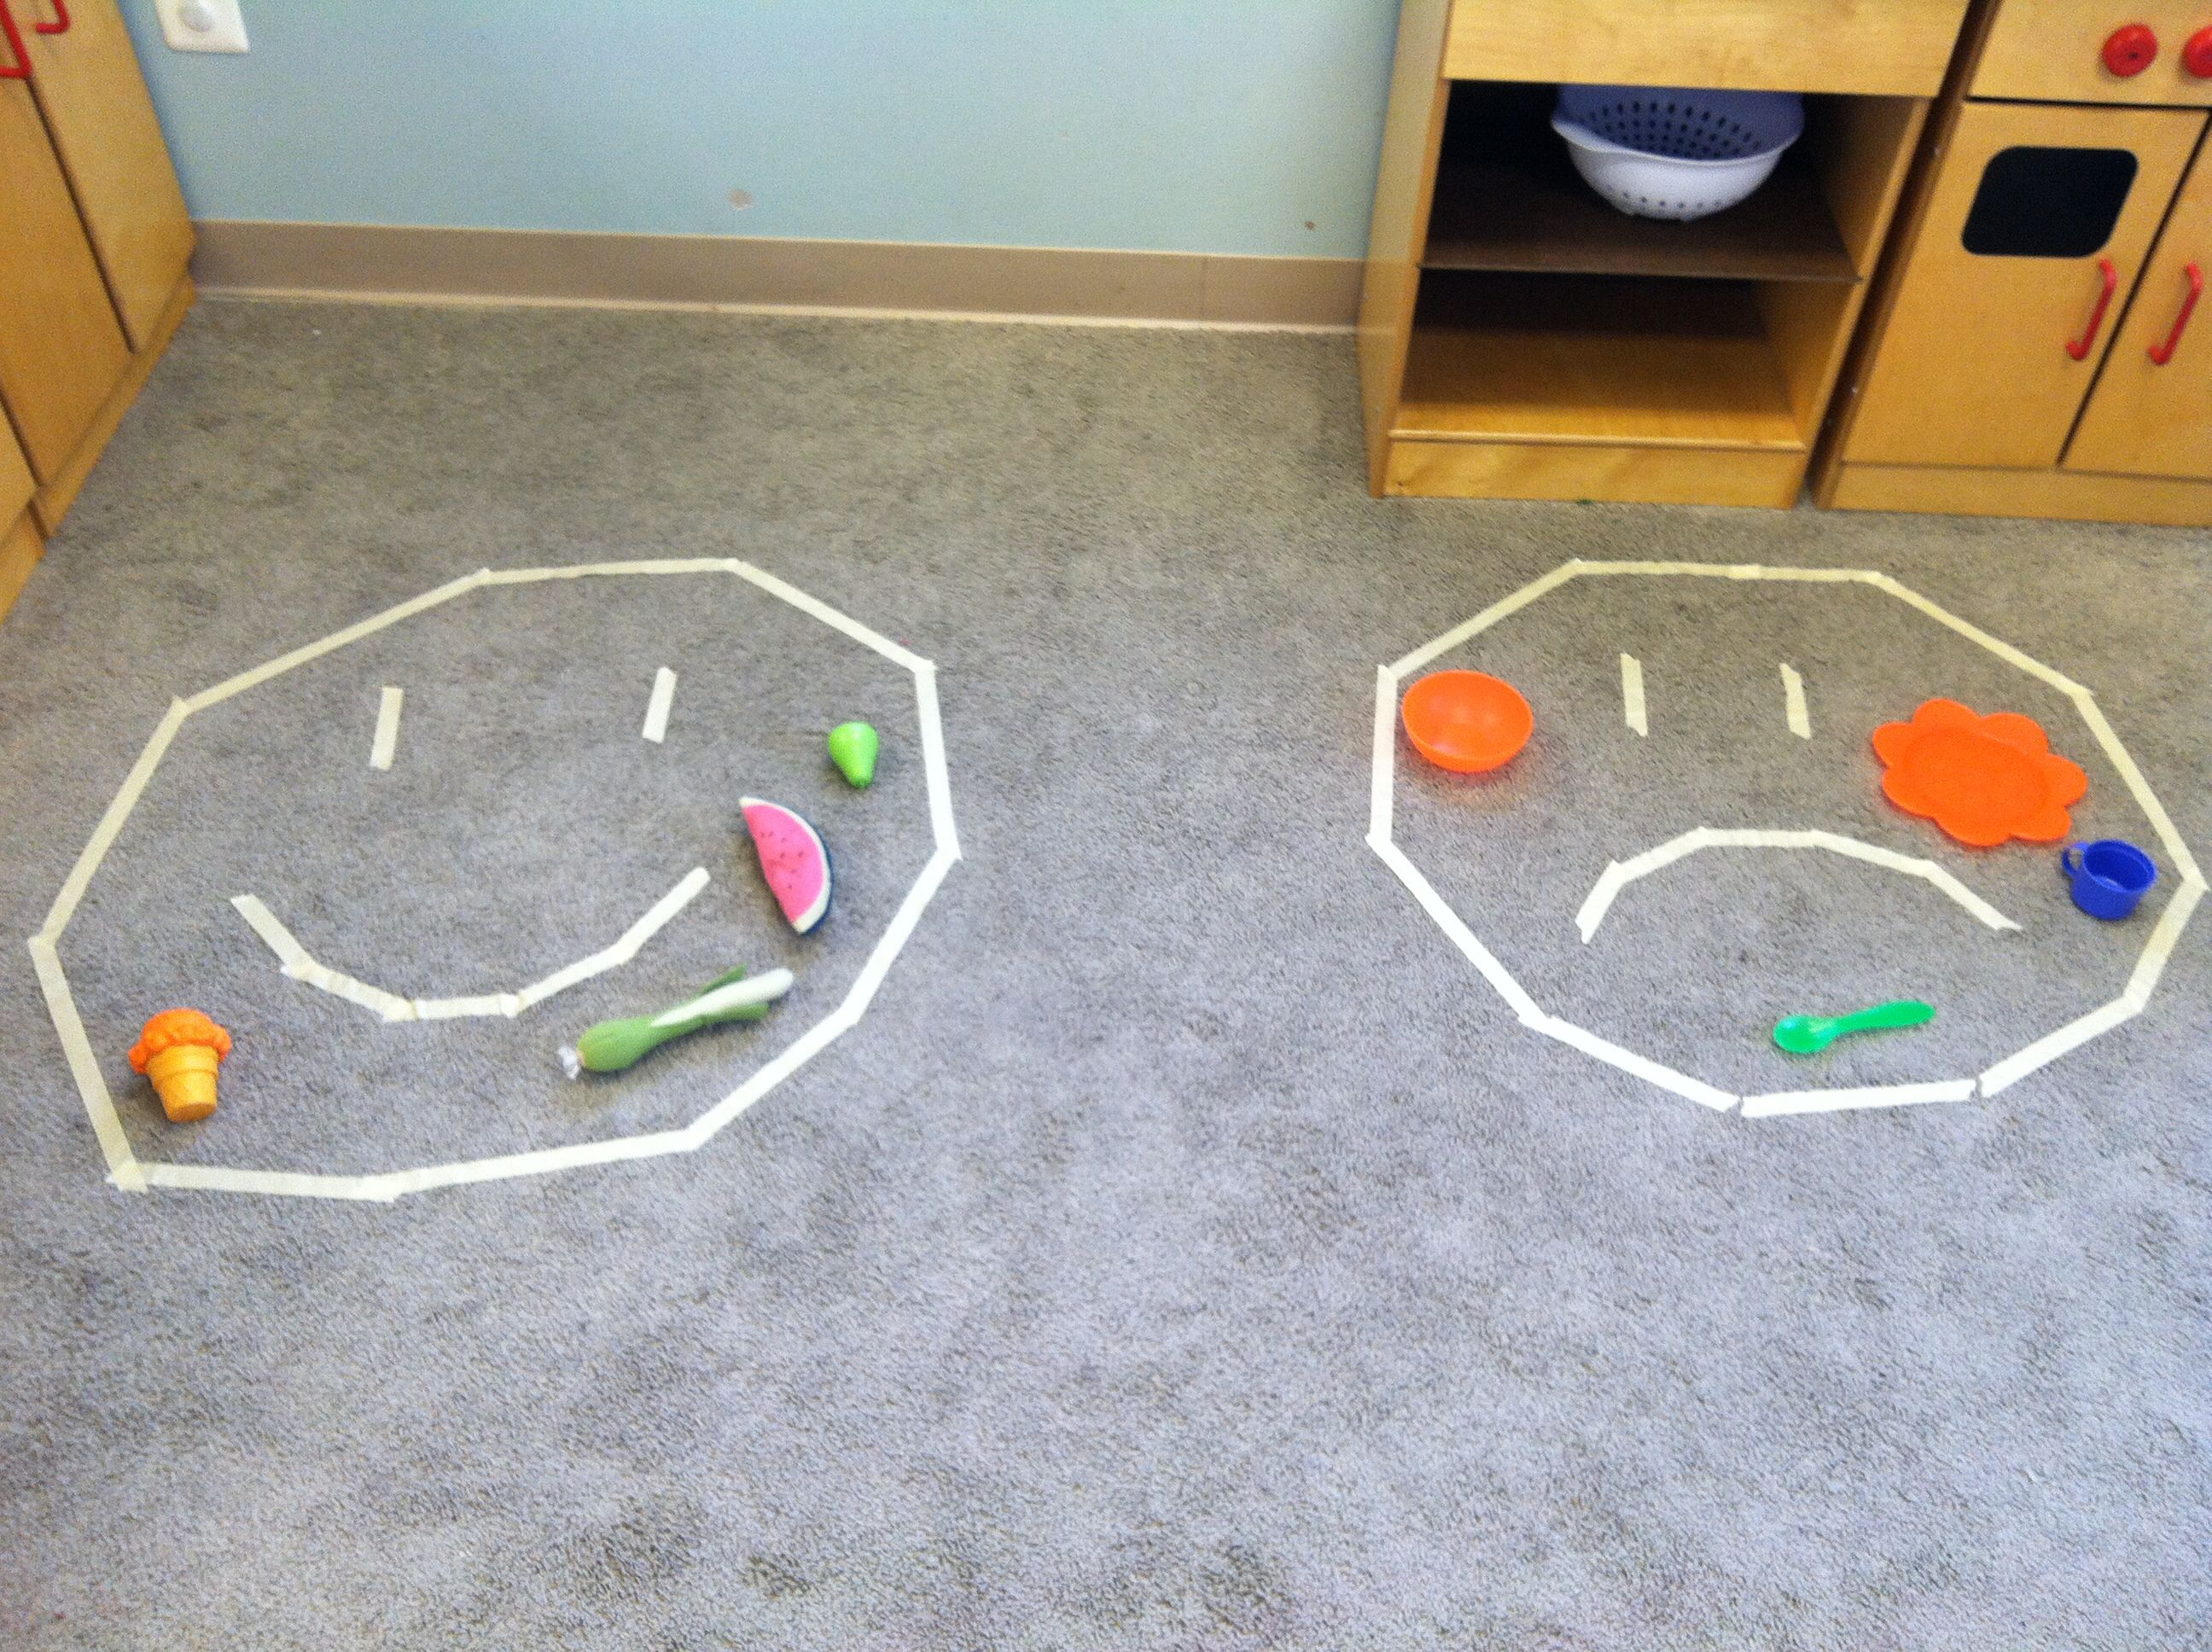 Happy Sad Or Yes No Activity For Toddlers They Sorted Kitchen Objects Of What Is And Is Not